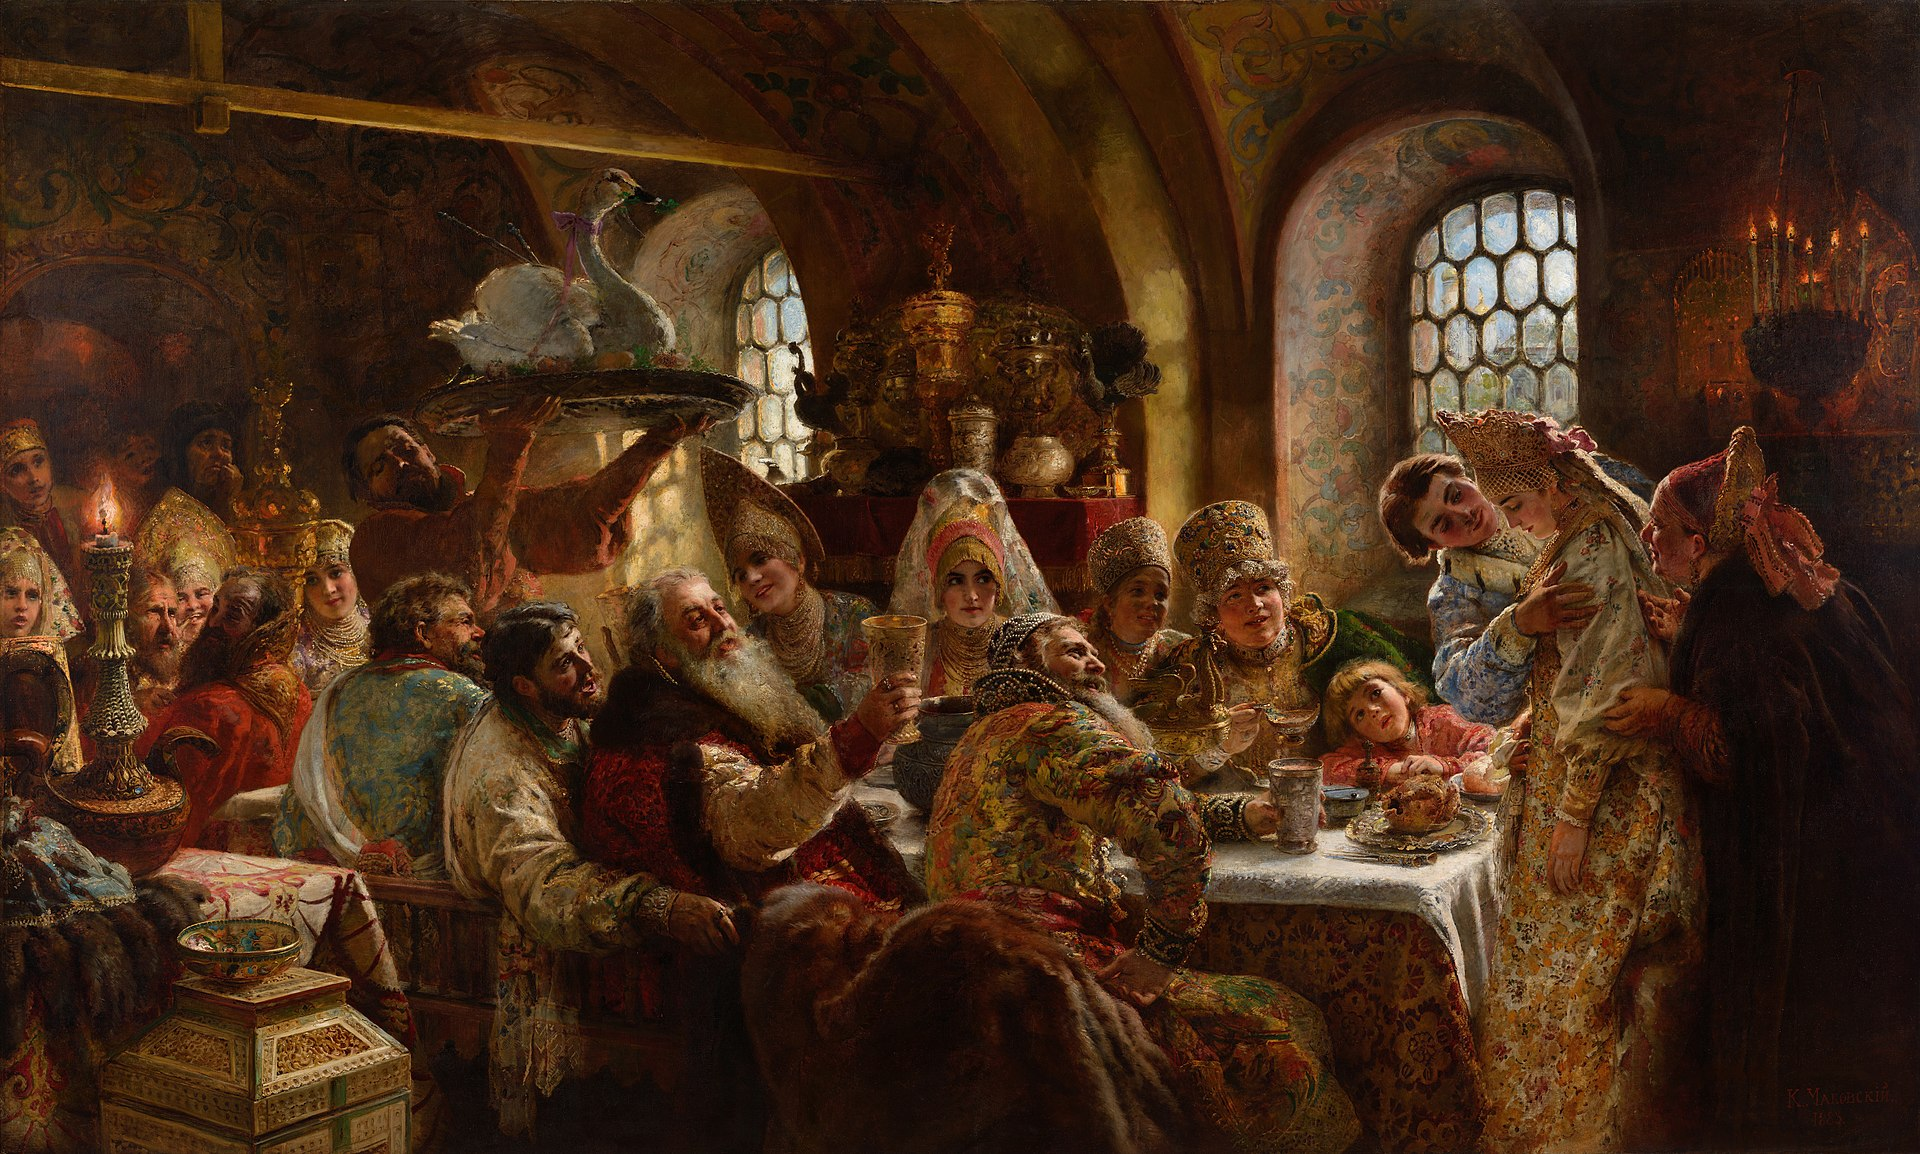 1920px-A_Boyar_Wedding_Feast_(Konstantin_Makovsky,_1883)_Google_Cultural_Institute